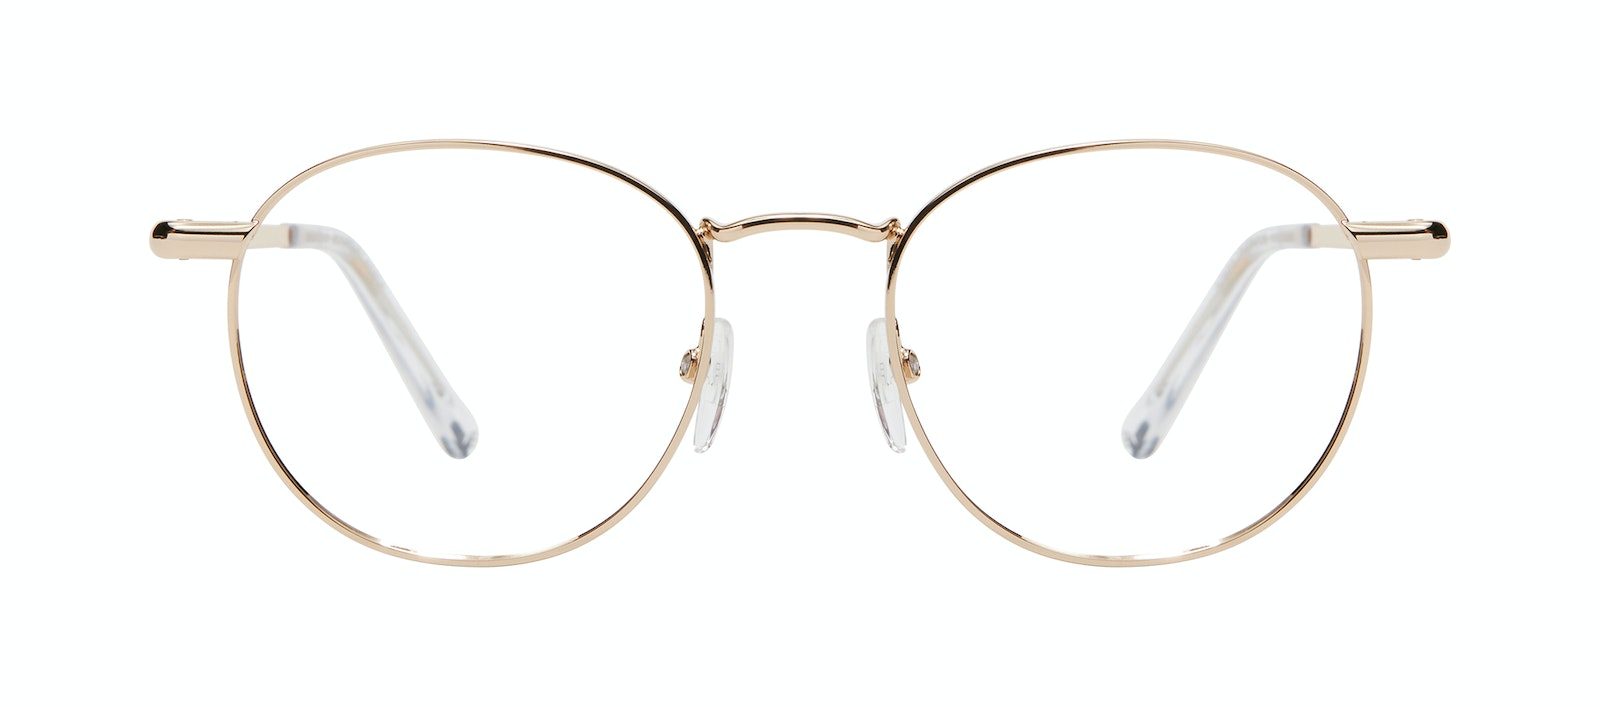 Affordable Fashion Glasses Round Eyeglasses Men Women Divine L Gold Front